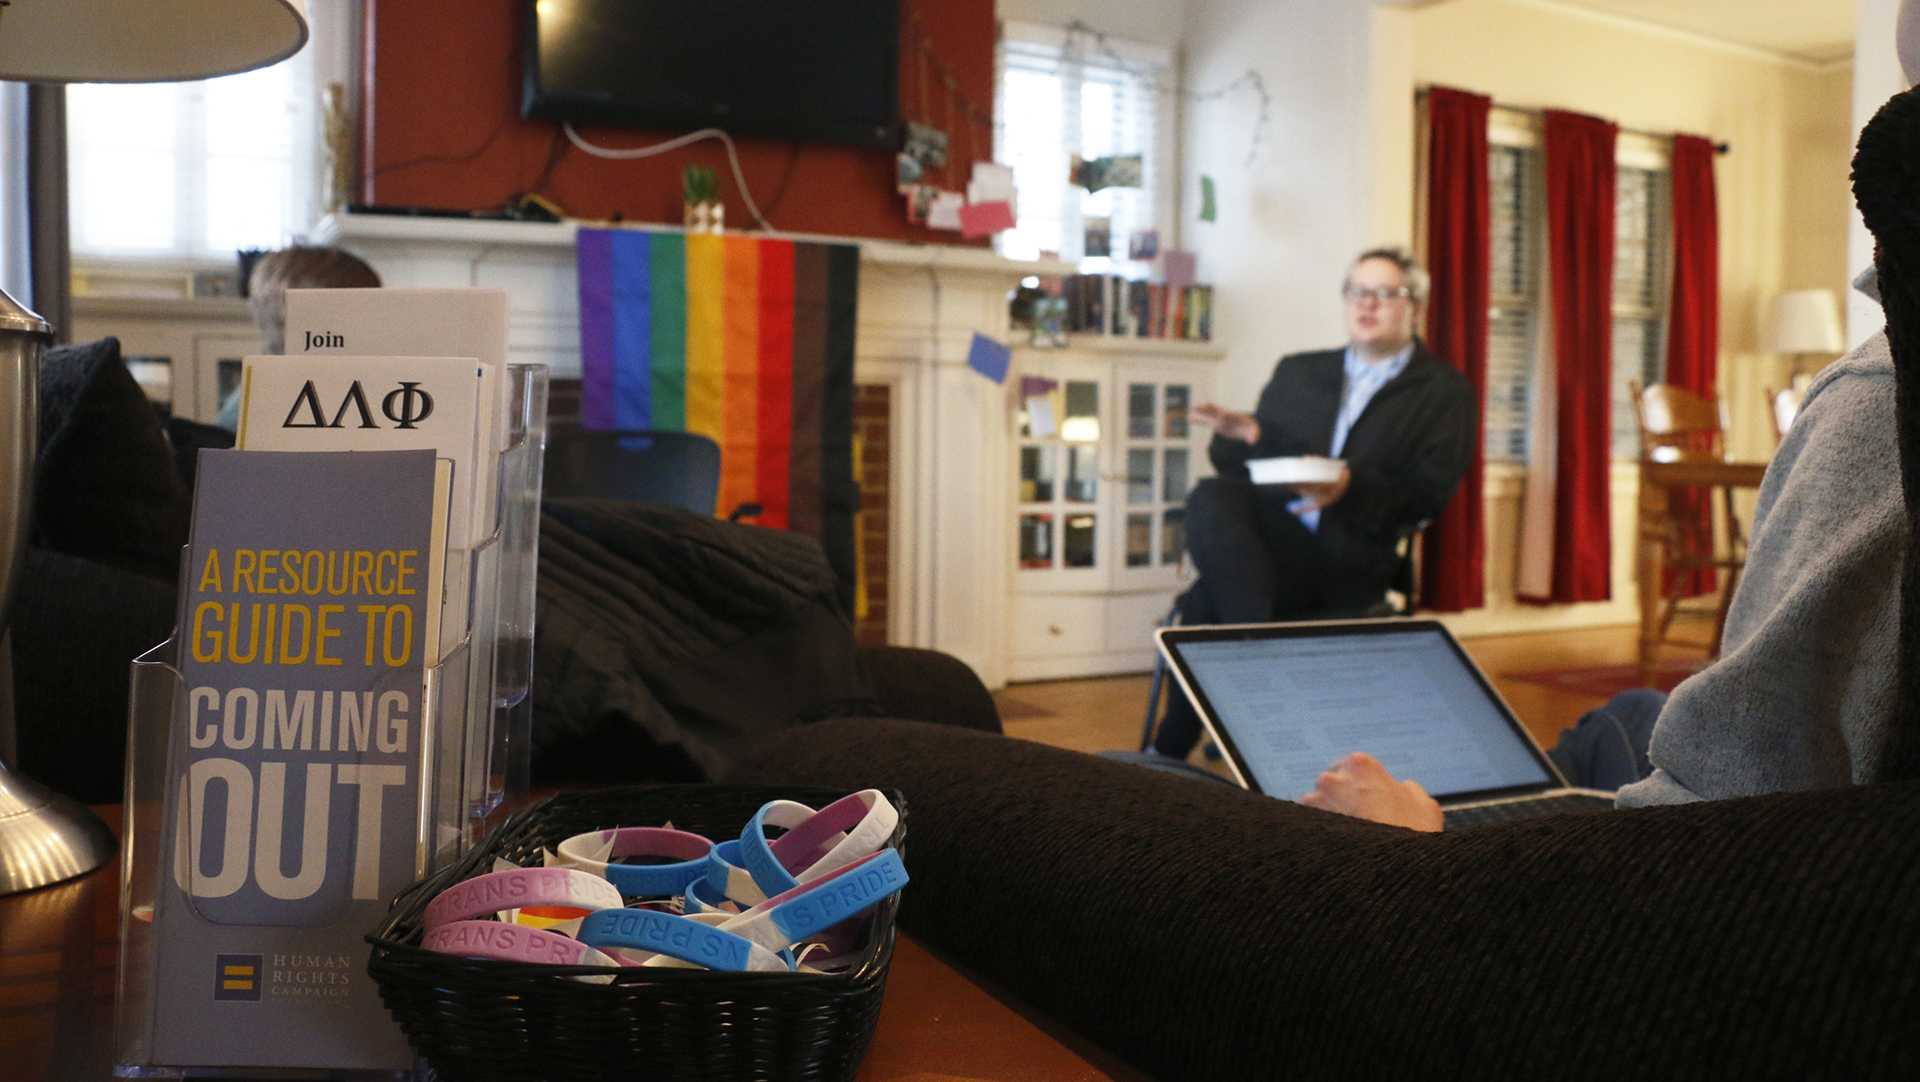 Employees discuss issues concerning the LGBT community in the UI LGBT Resource Center on Feb. 7, 2018. Representatives from Student Legal Services, the UI LGBT Clinic, and Student Health Services spoke about the resources that would available to trans individuals on campus. (Katina Zentz/The Daily Iowan)